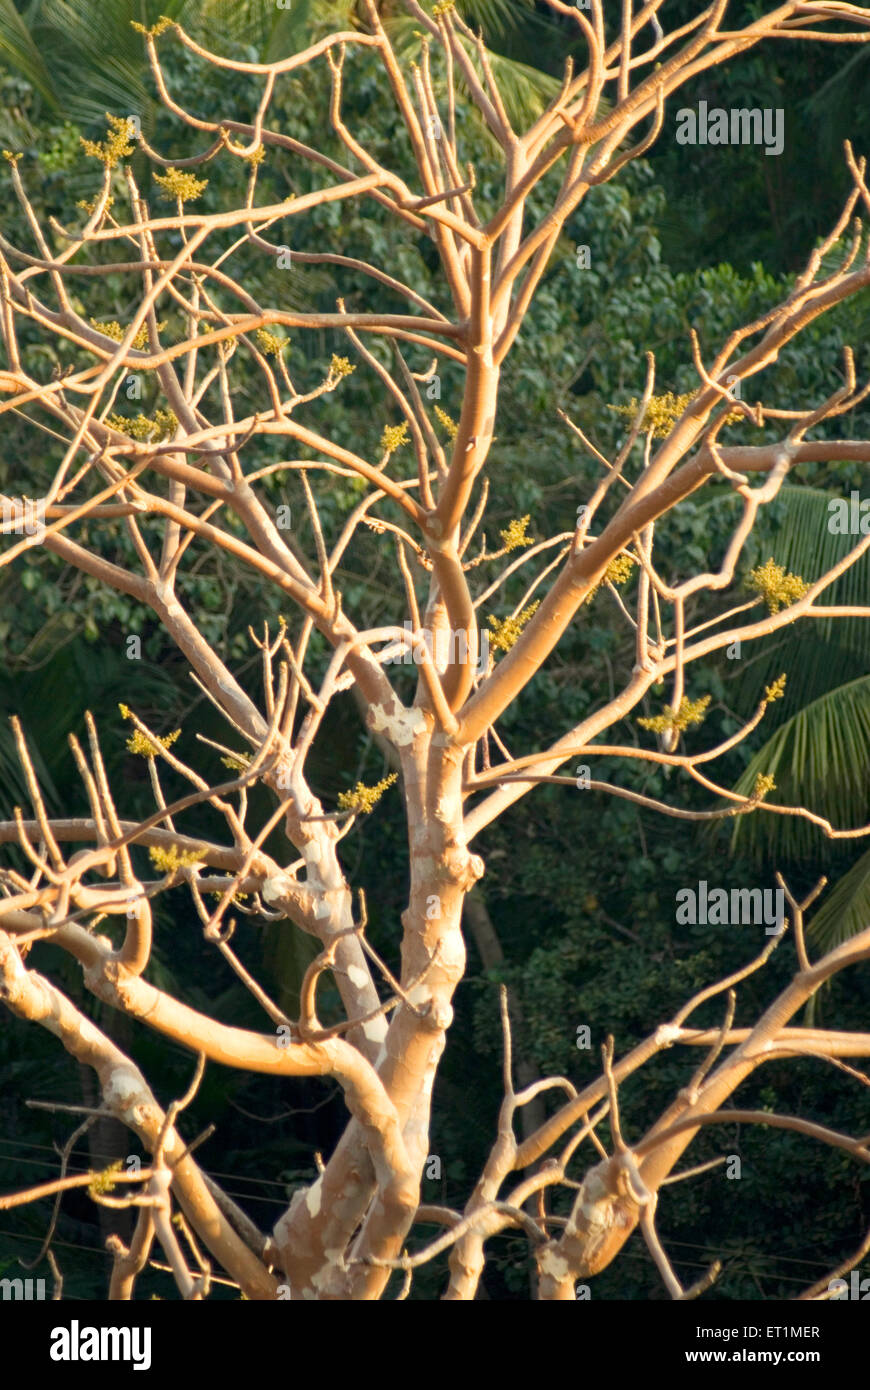 Branches of kandol sterculia urens tree in morning light ; Anjarle village ; district Dapoli ; Maharashtra ; India - Stock Image